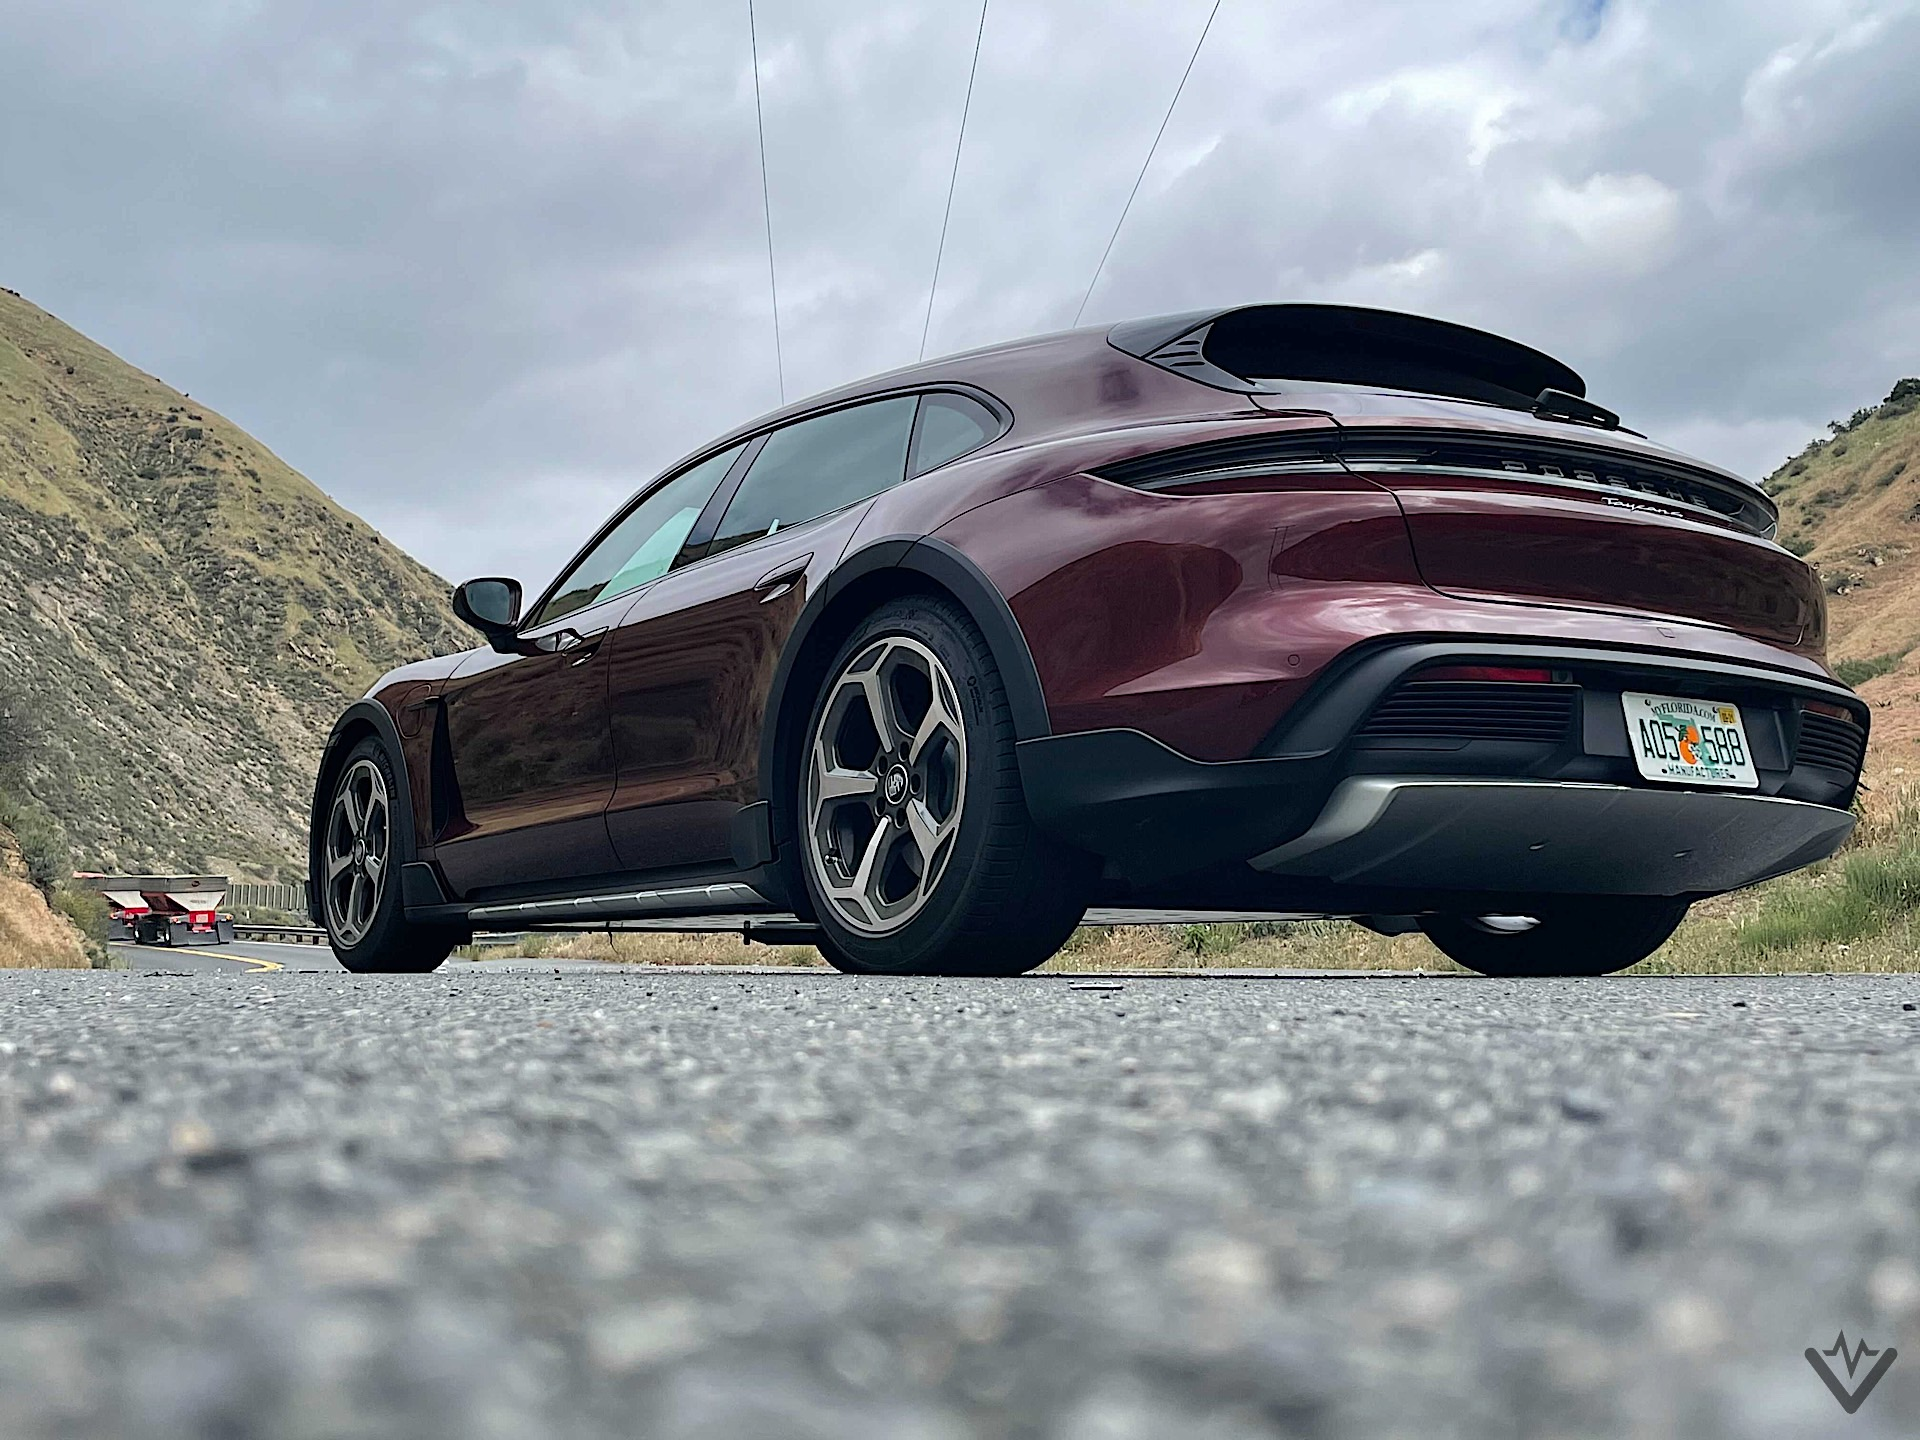 2021 Porsche Taycan Cross Turismo first drive Image from iOS 125 1